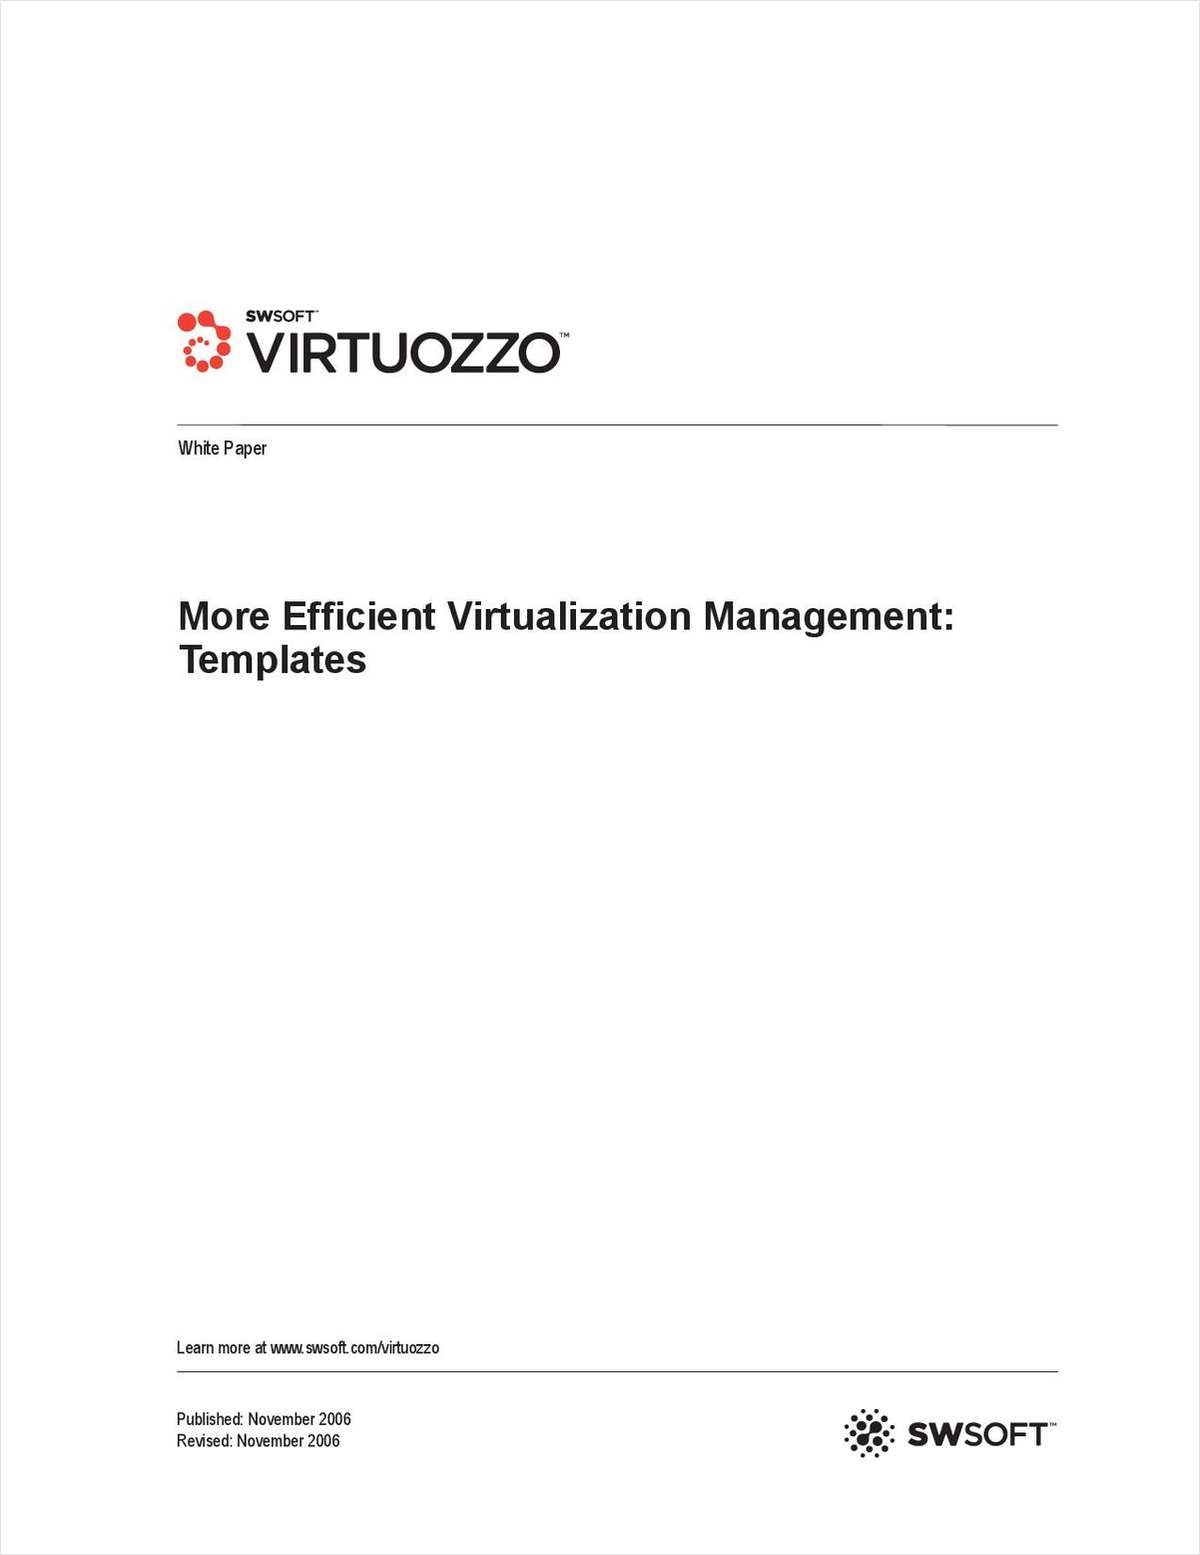 Templates for More Efficient Virtualization Management